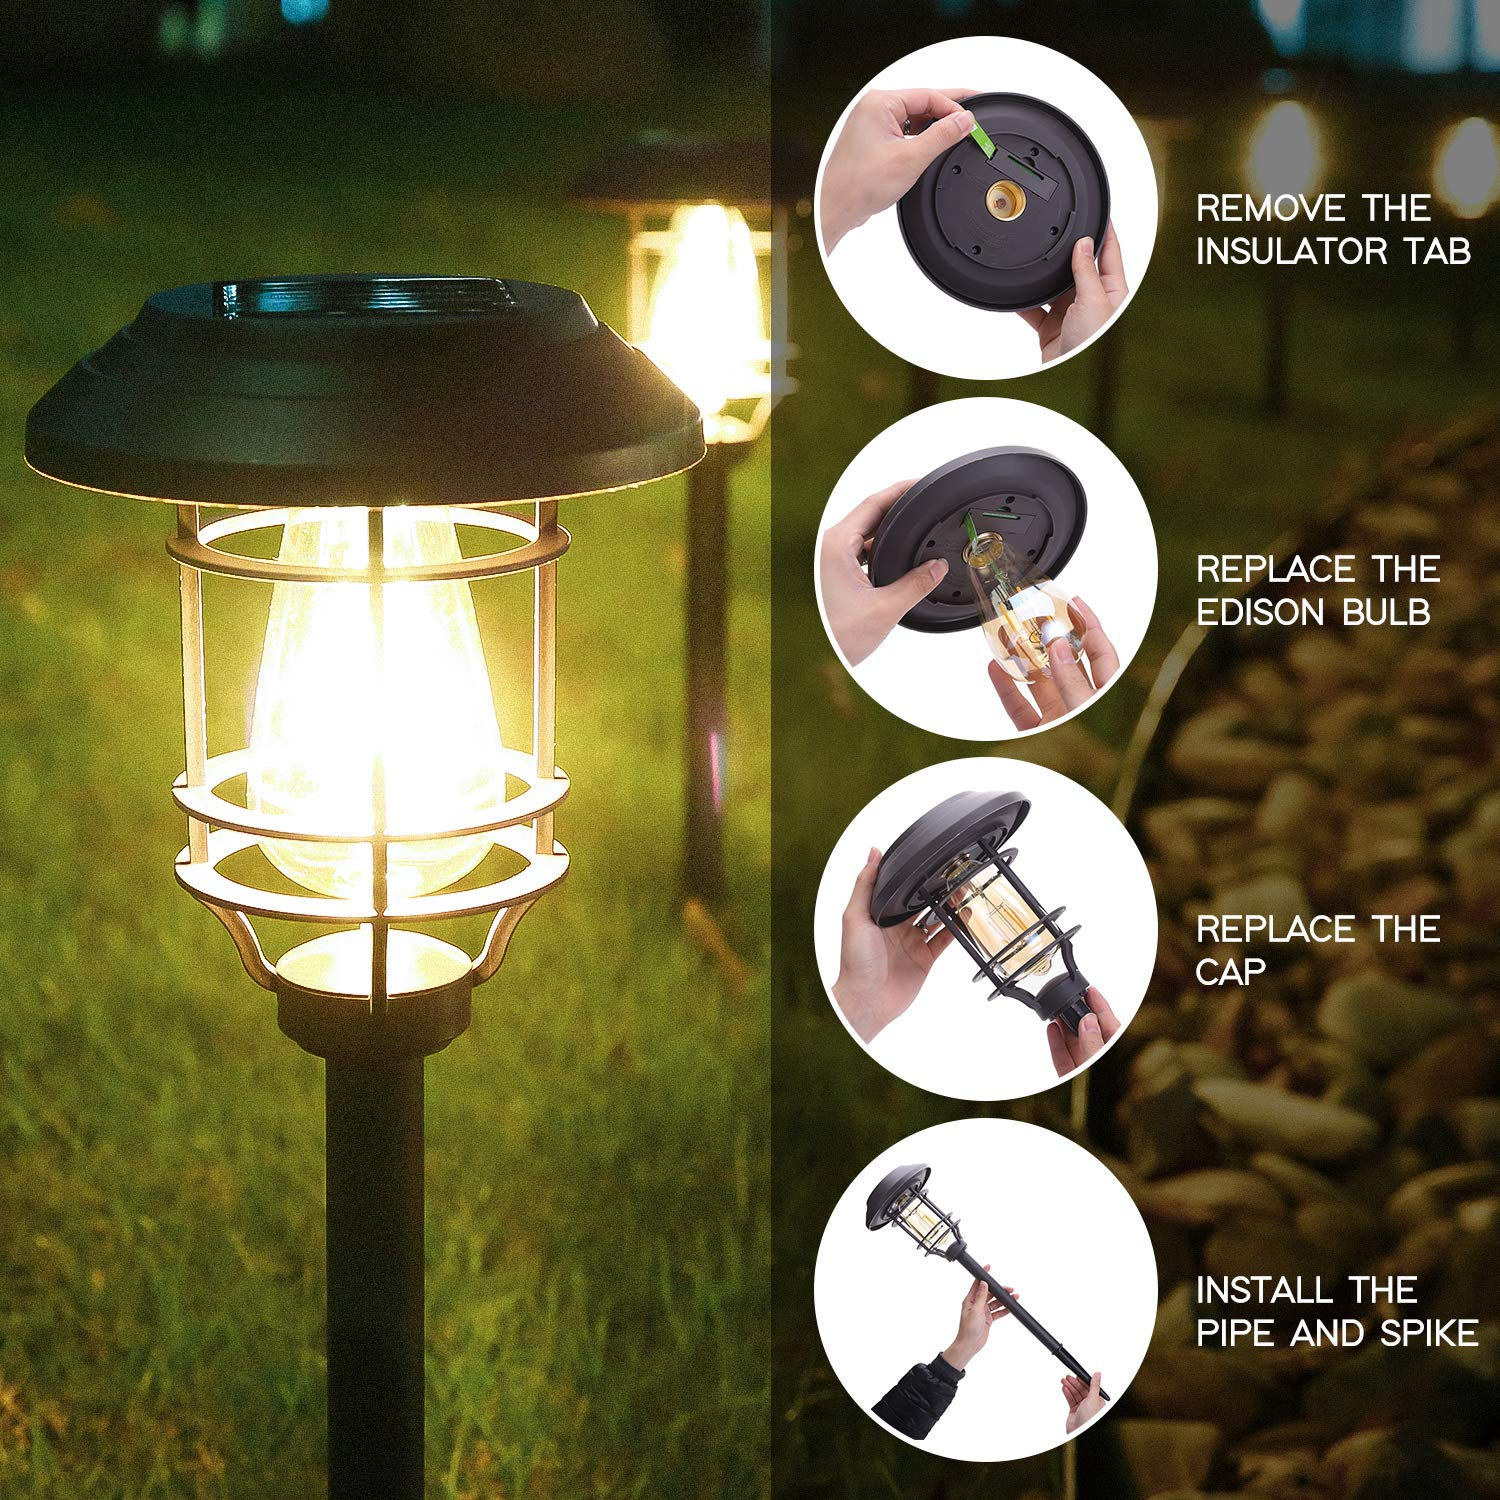 HECARIM Solar Lights Outdoor, 6 Pack Solar Pathway Lights, Solar Powered Garden Lights, Waterproof LED Solar Landscape Lights for Walkway, Pathway, Lawn, Yard and Driveway by HECARIM (Image #5)